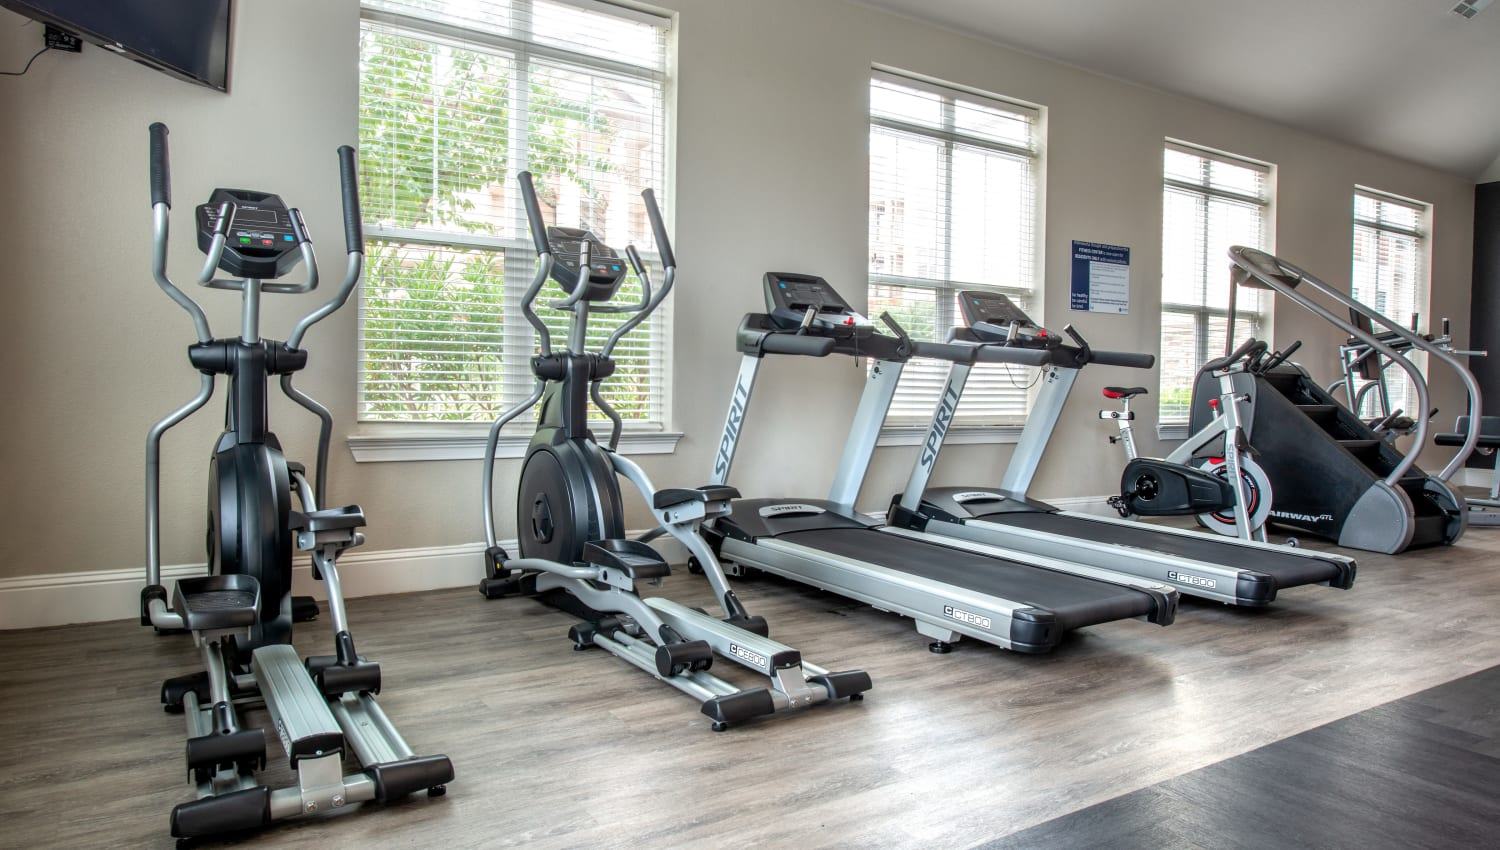 Fitness center at Olympus Katy Ranch in Katy, TX